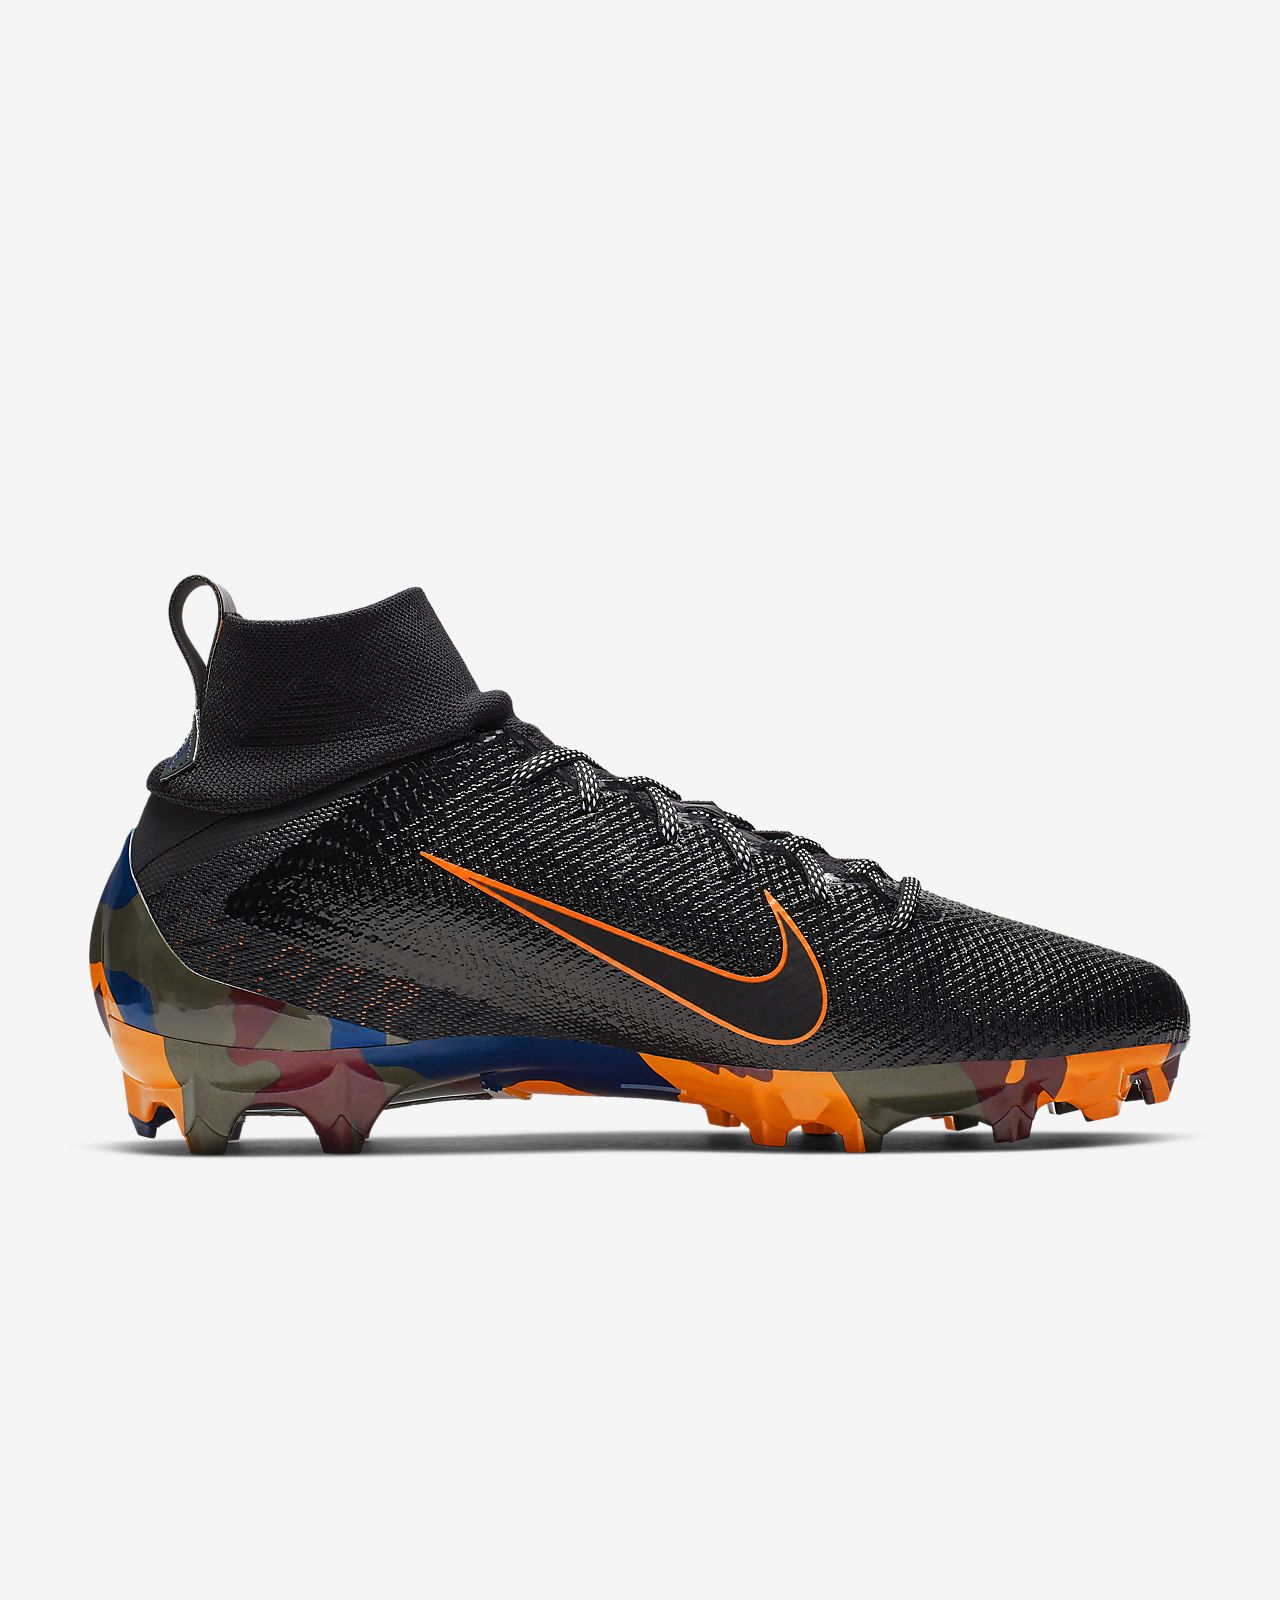 8c851ad03 Nike Vapor Untouchable Pro 3 Men s Football Cleat. Nike.com